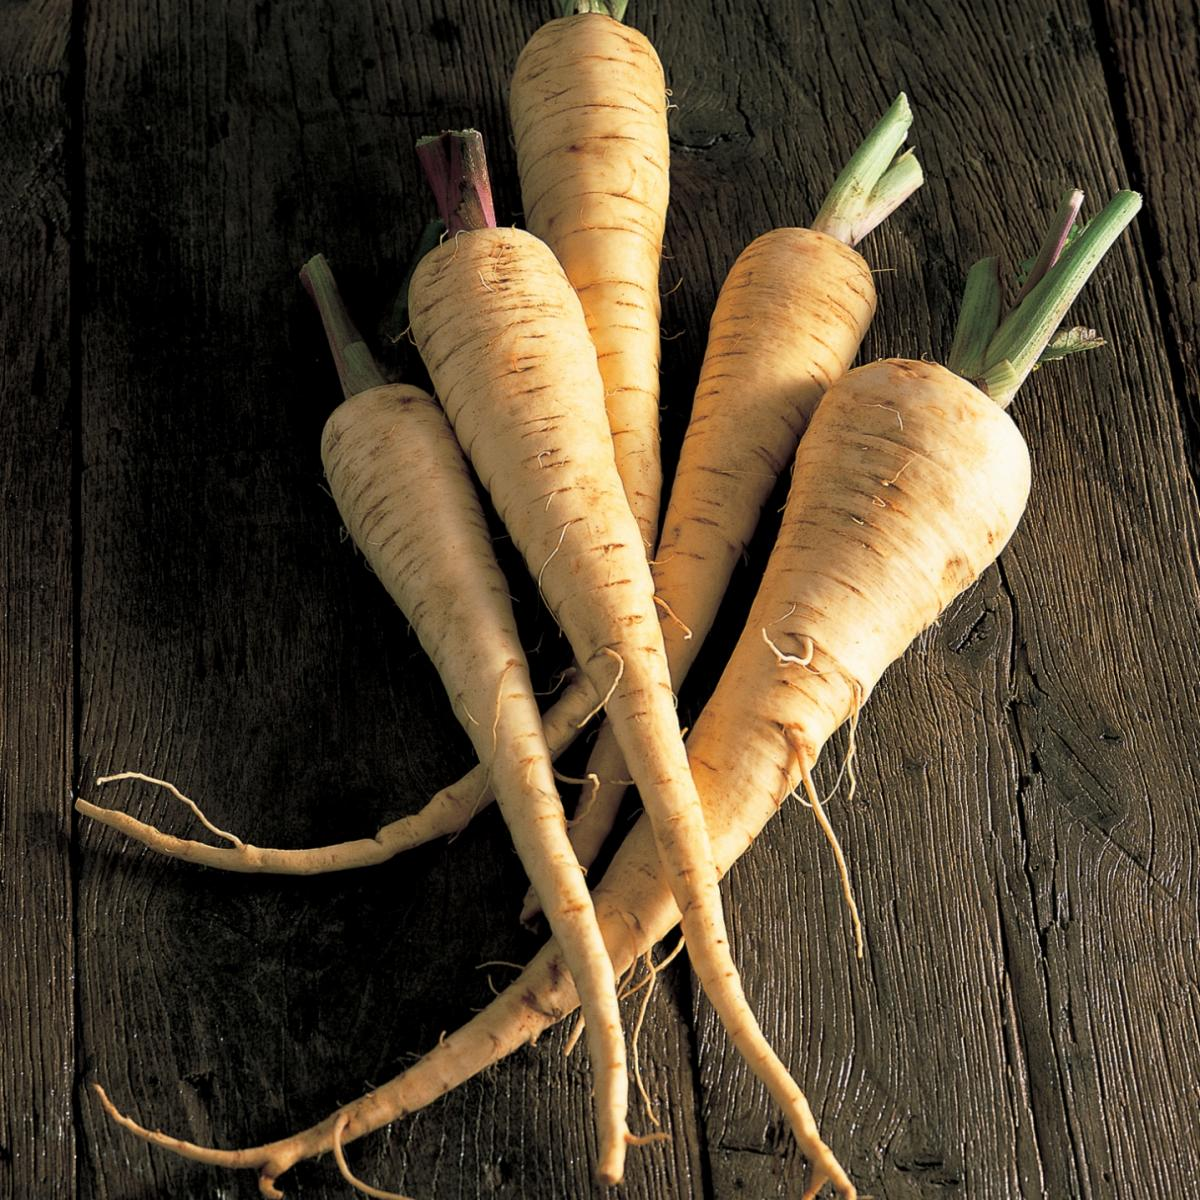 Ingredient soup parsnips